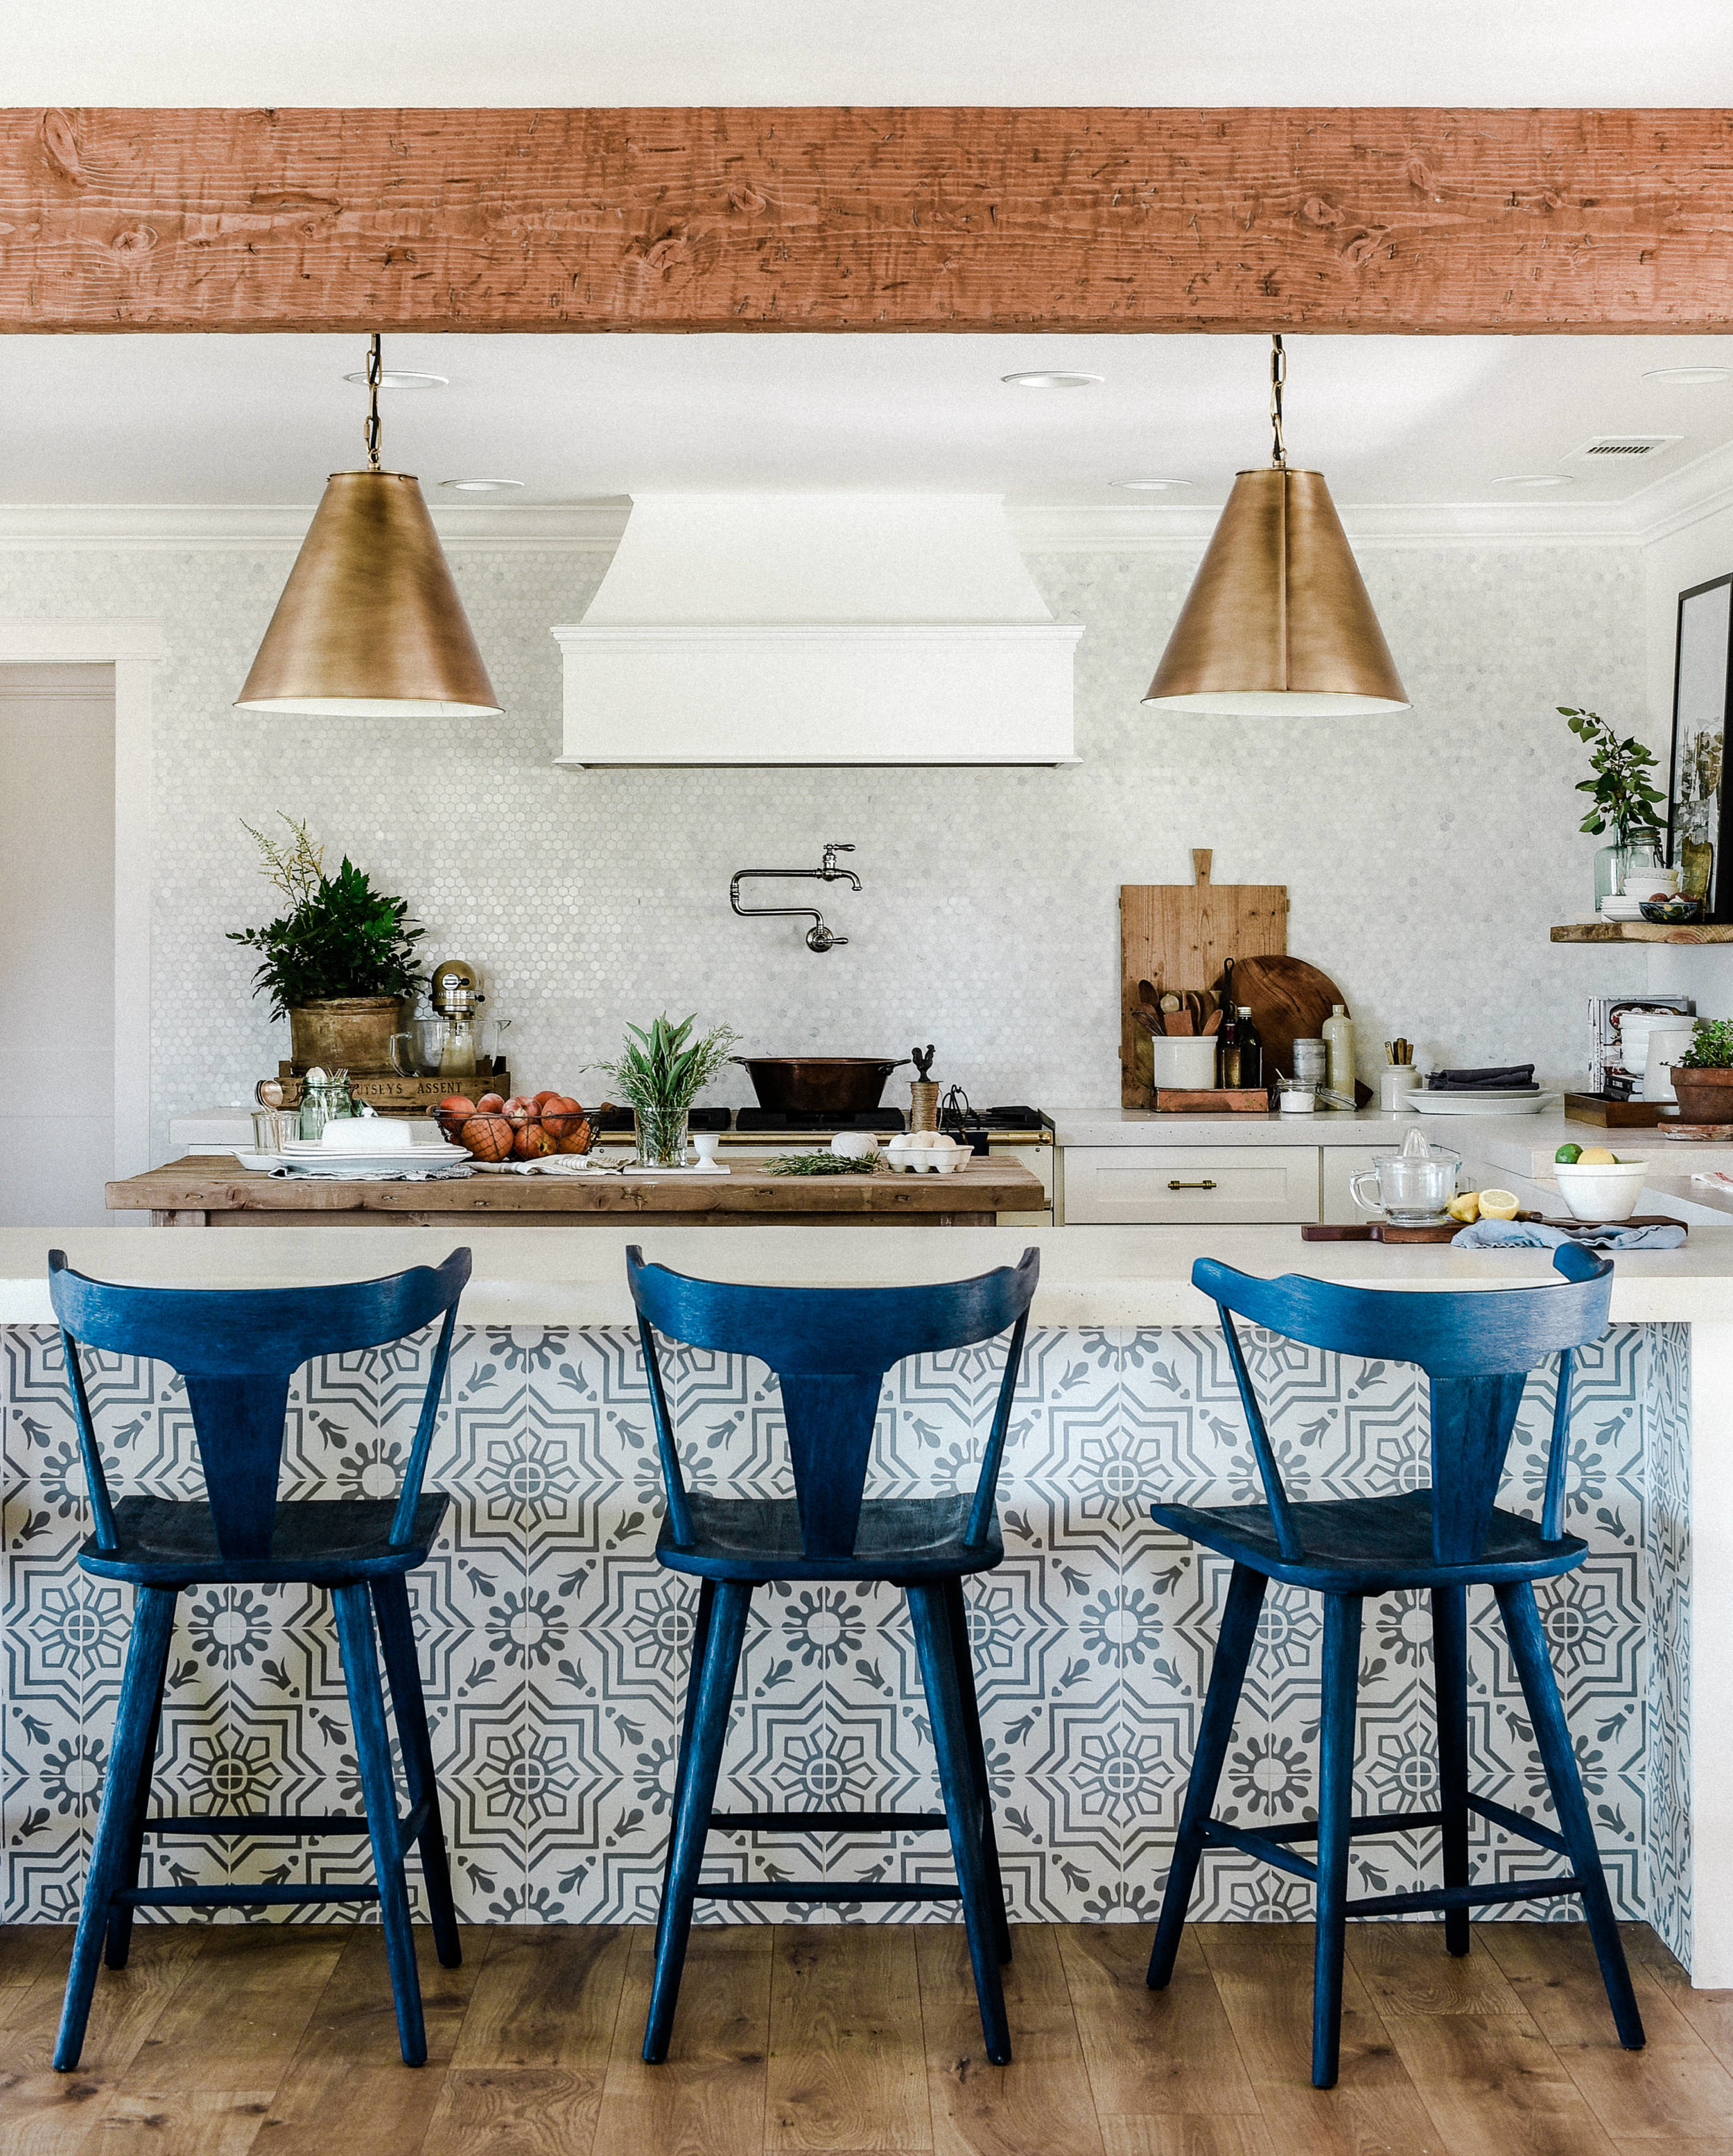 Modern farmhouse kitchen with patterned tile and french range with wood island | bozwoodavenue.com #farmhousekitchen #modernfarmhouse